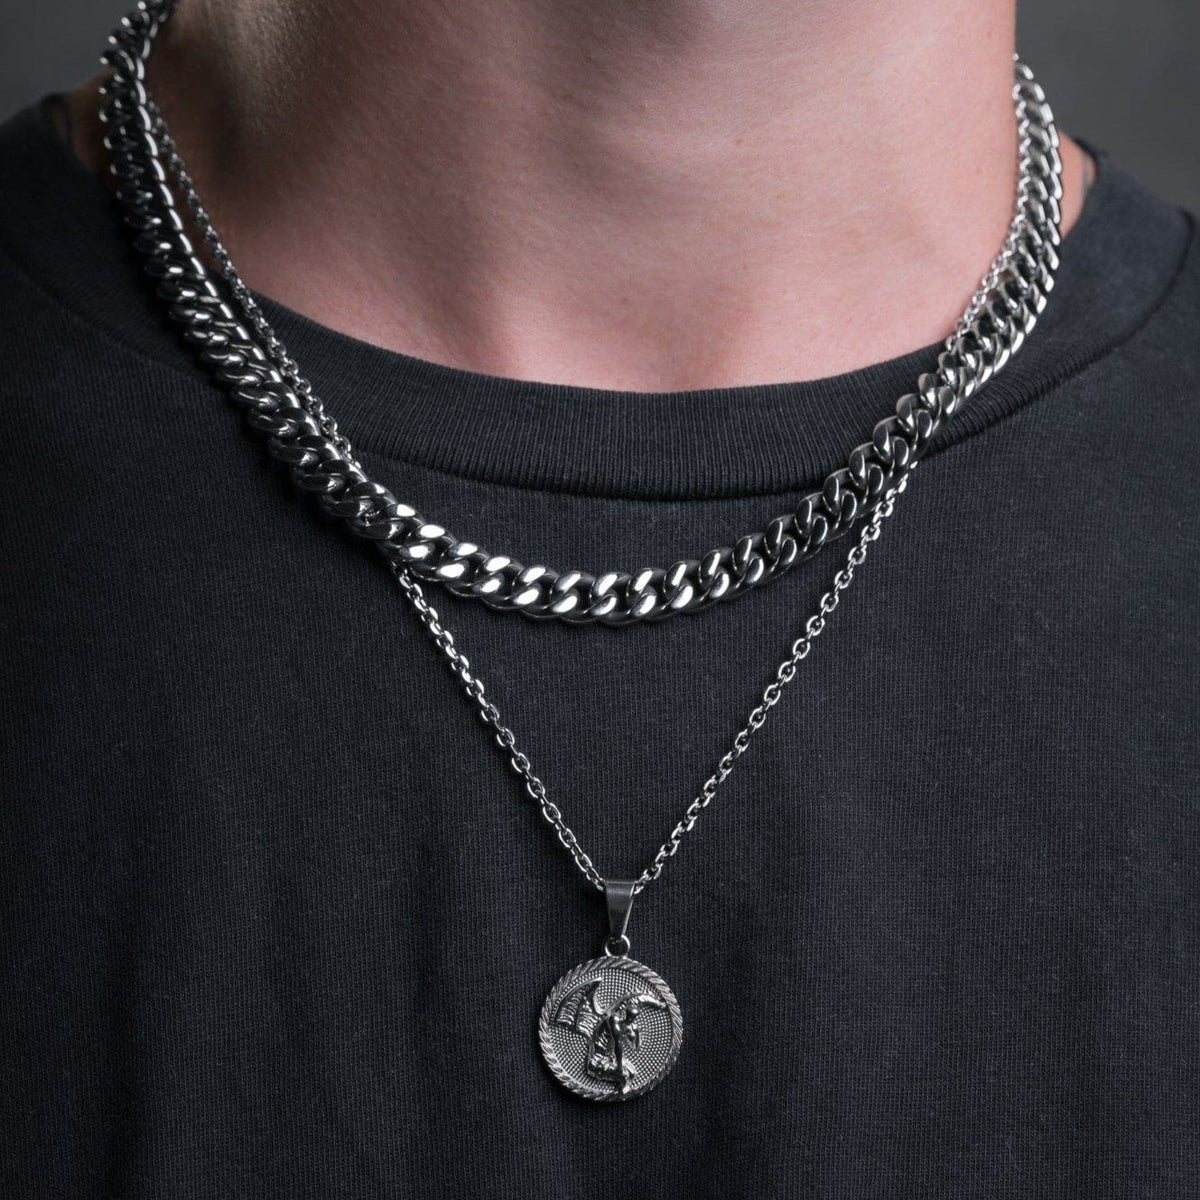 Fallen Angel Medallion Pendant Mens Necklace by Statement_06